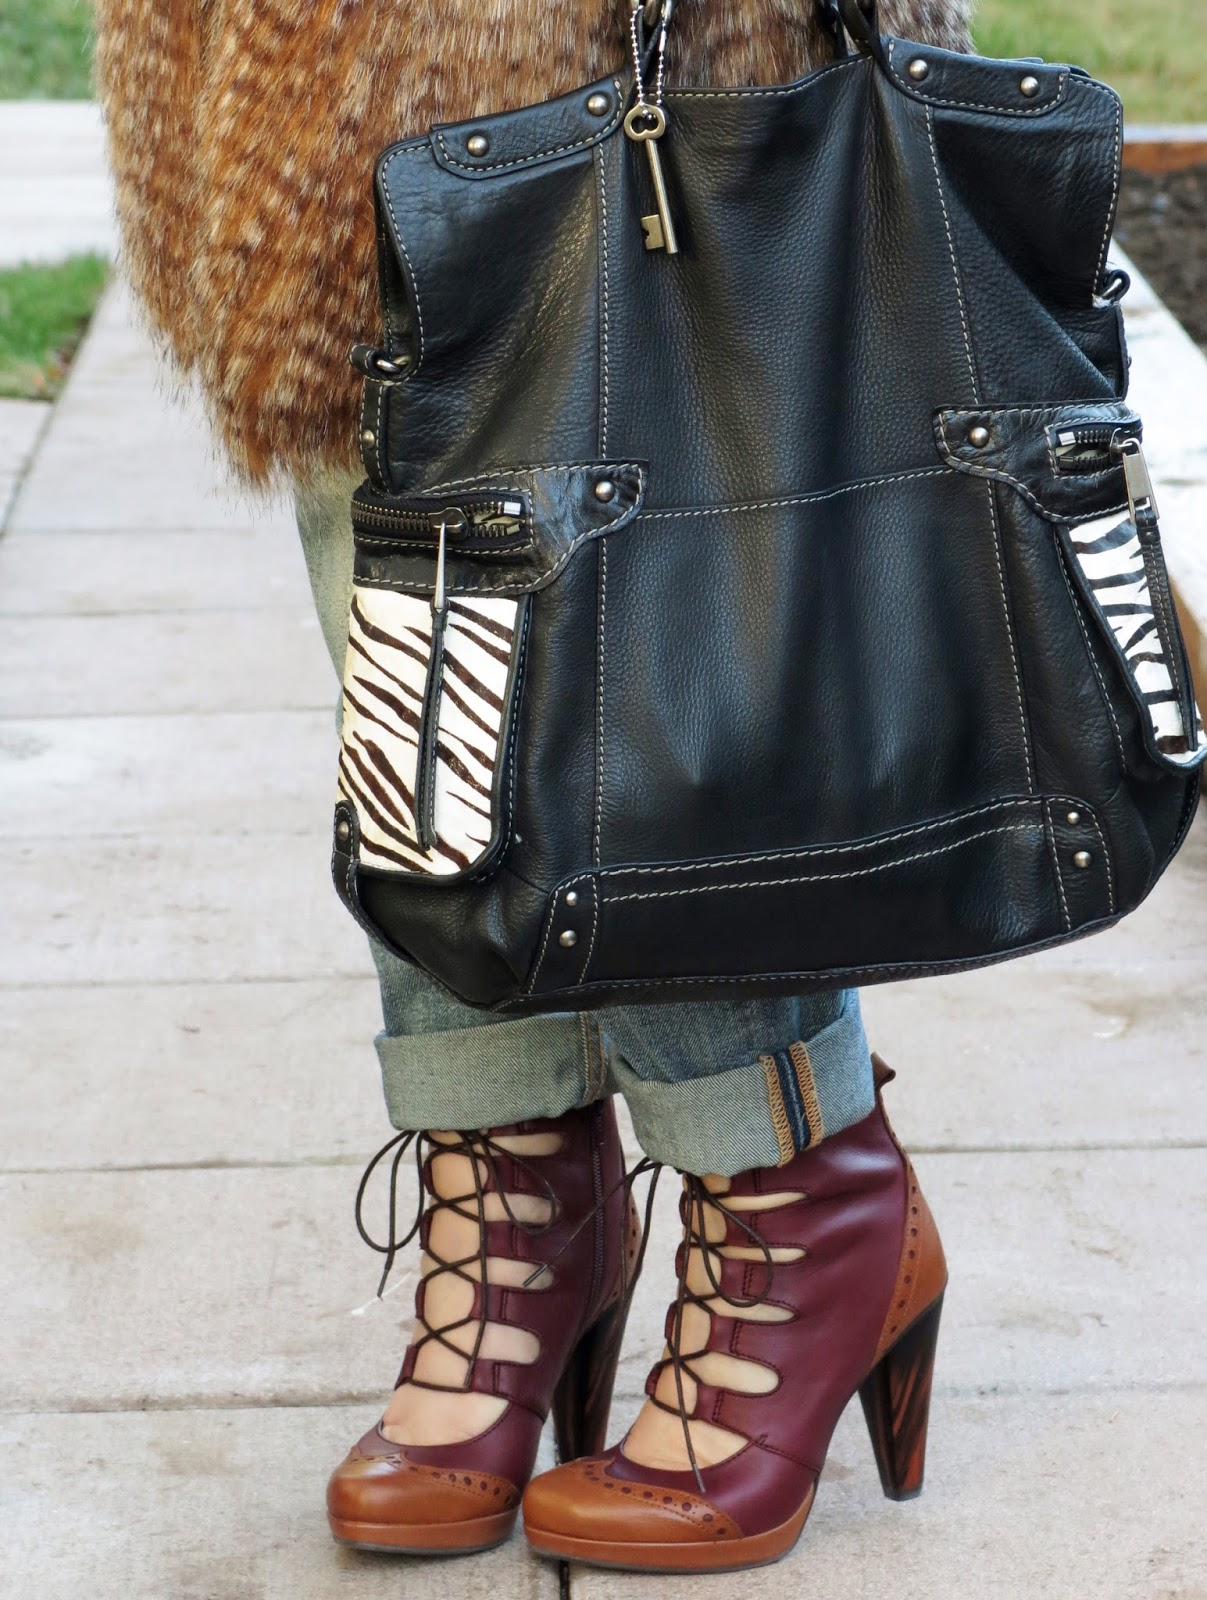 lace-up shoes and zebra-stripe detailed Fossil bag